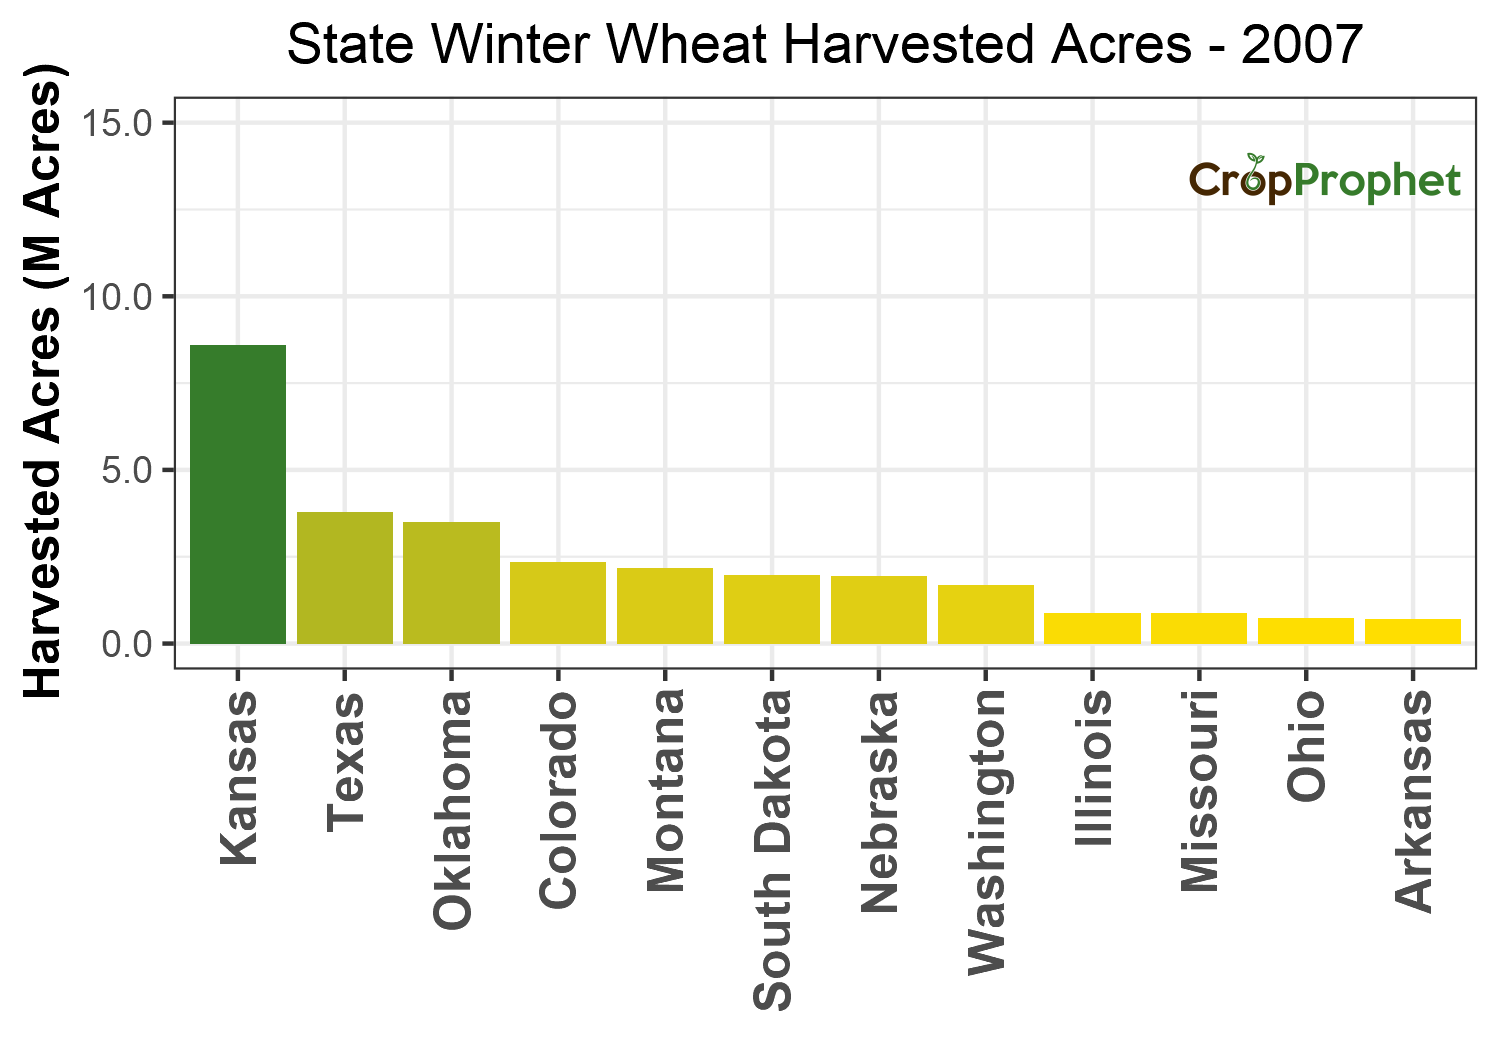 Winter wheat Harvested Acres by State - 2007 Rankings